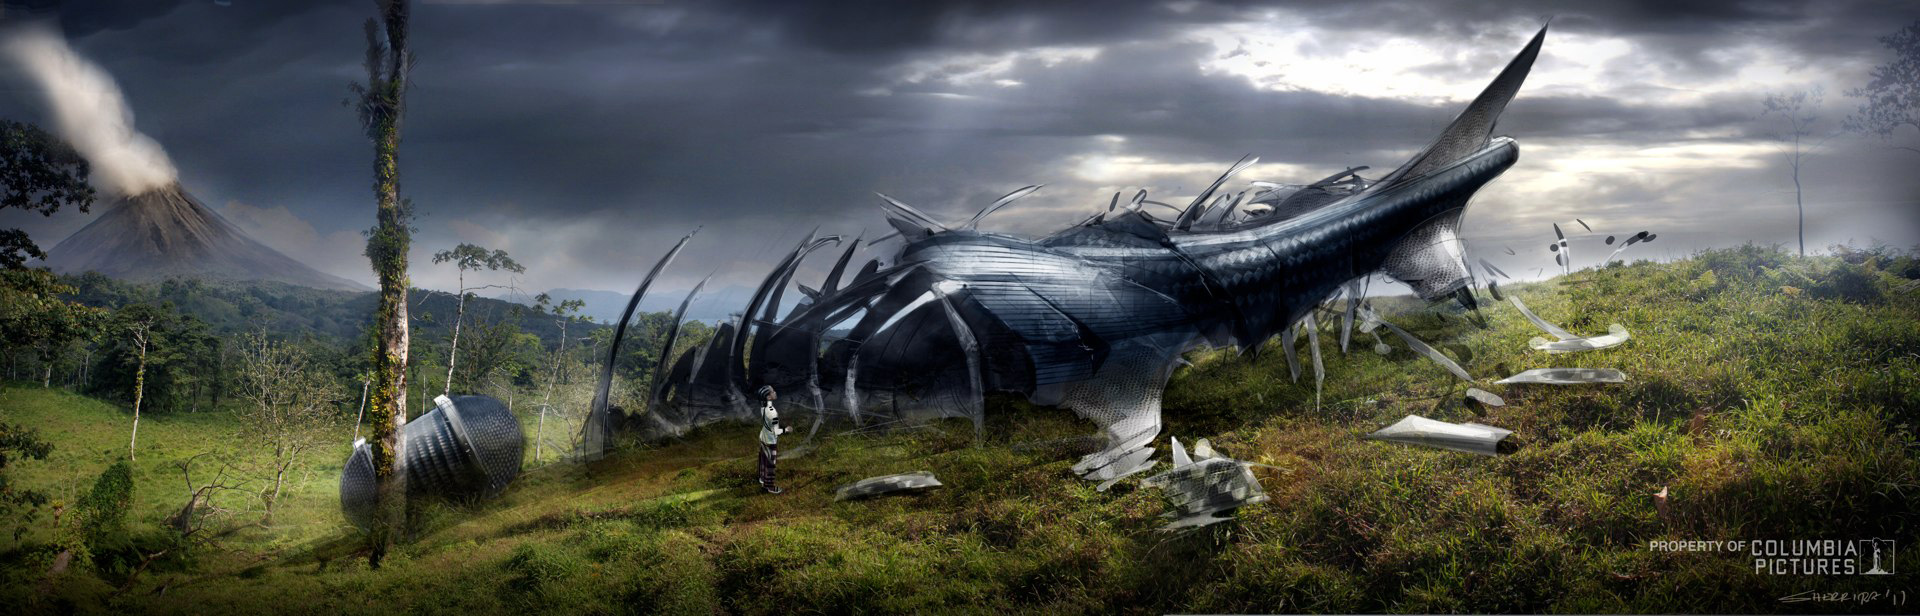 after earth concept art - photo #9